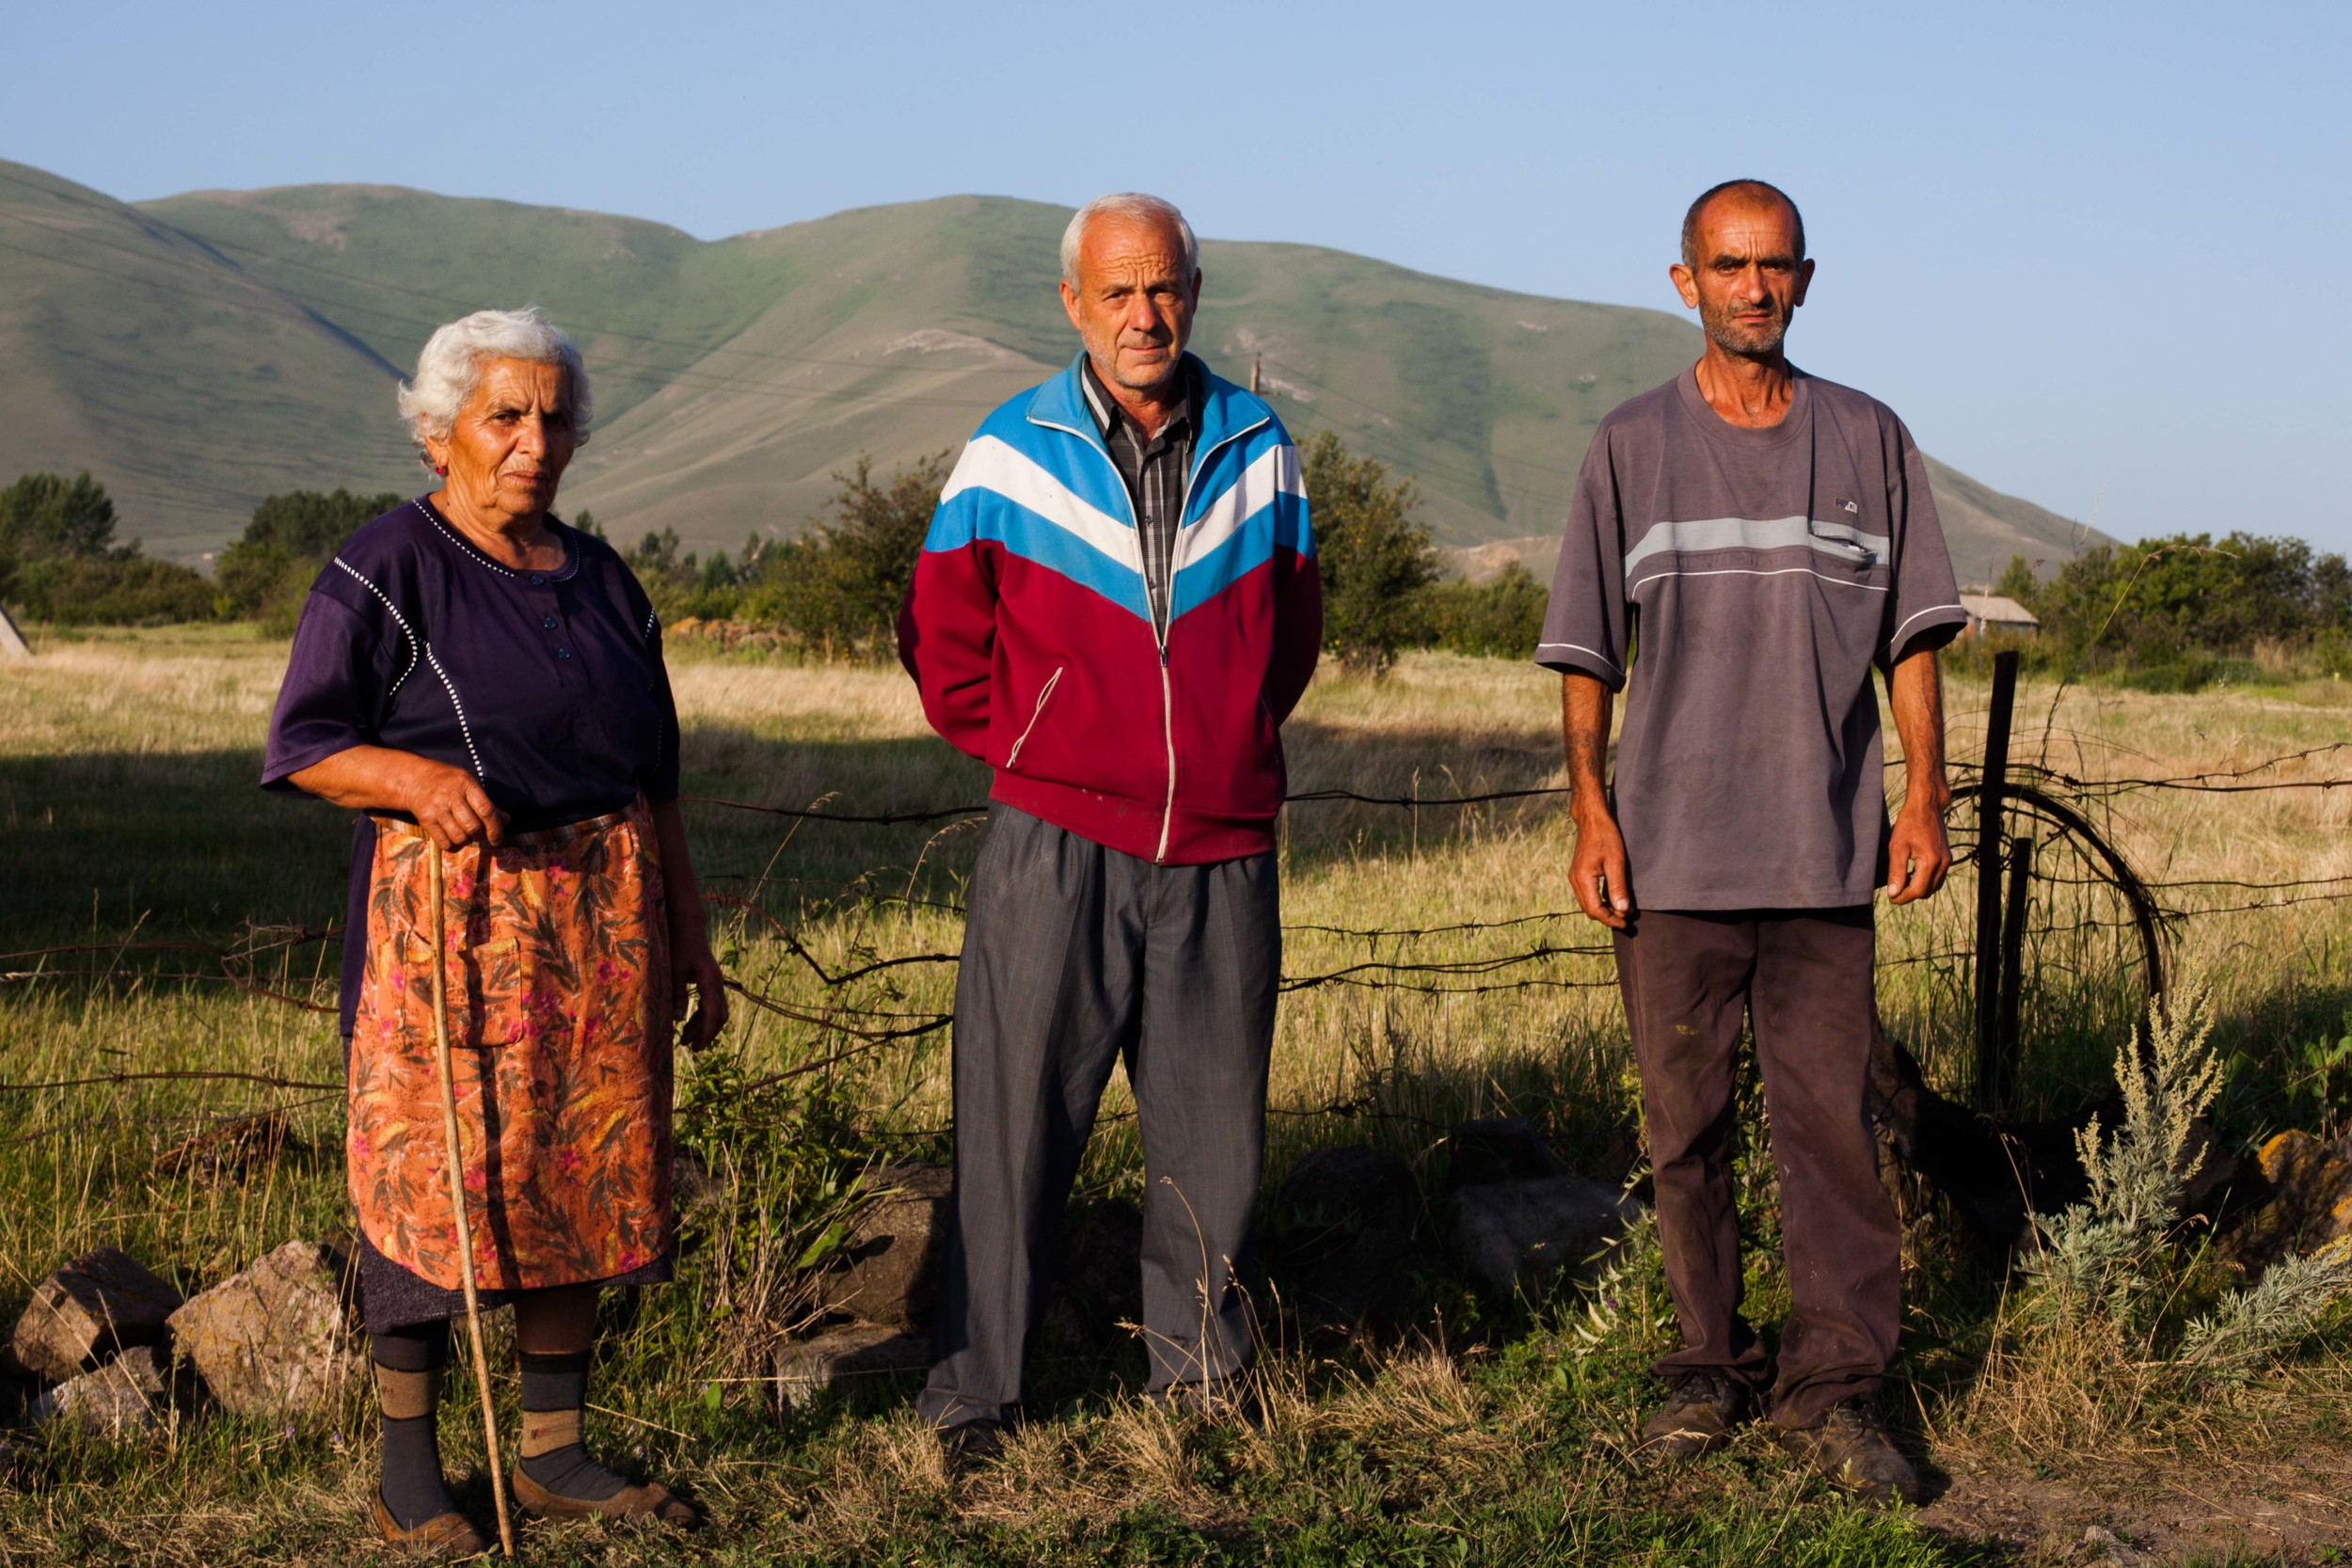 Local Spitak residents are up at sunrise to maintenance their land and to send their cows off with the shepherd.